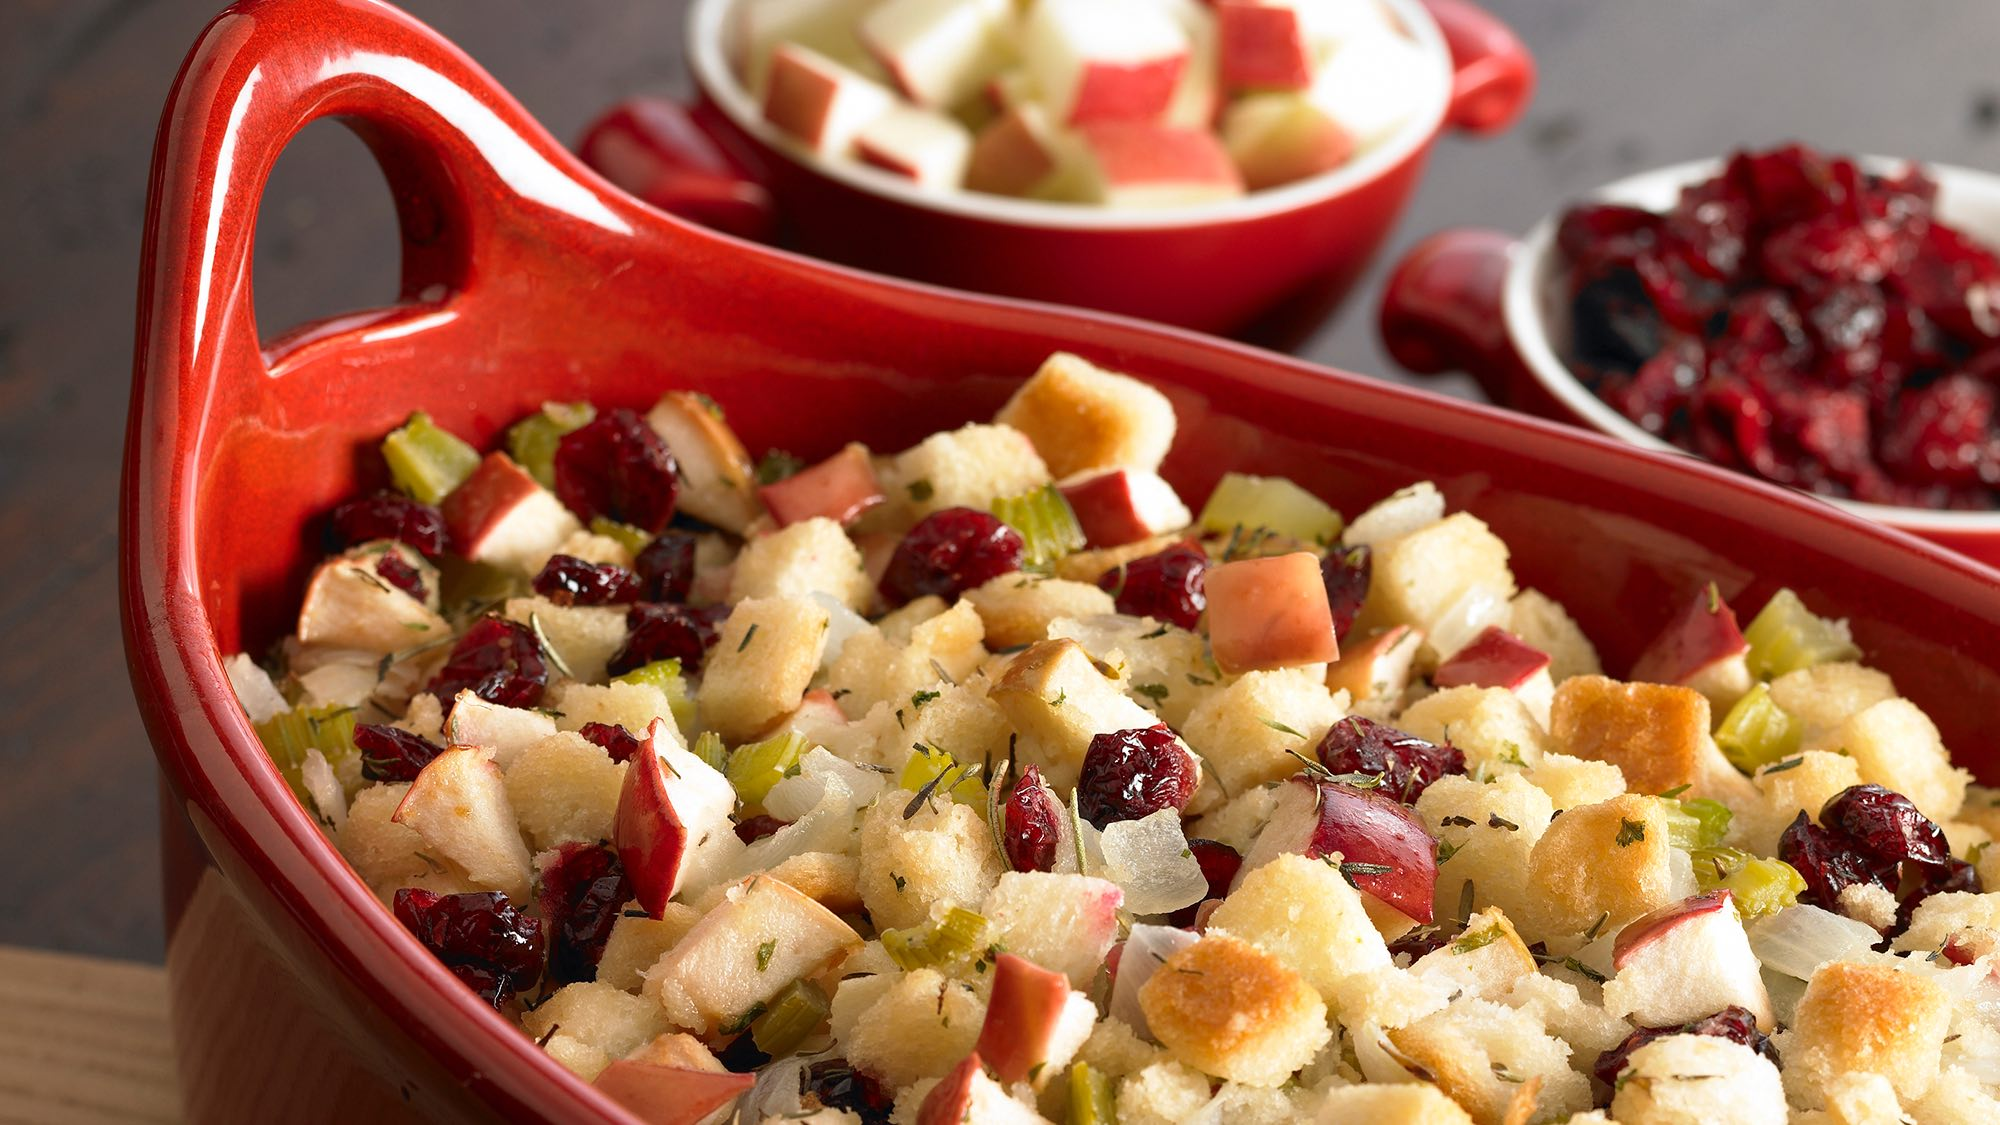 McCormick Cranberry Apple Stuffing